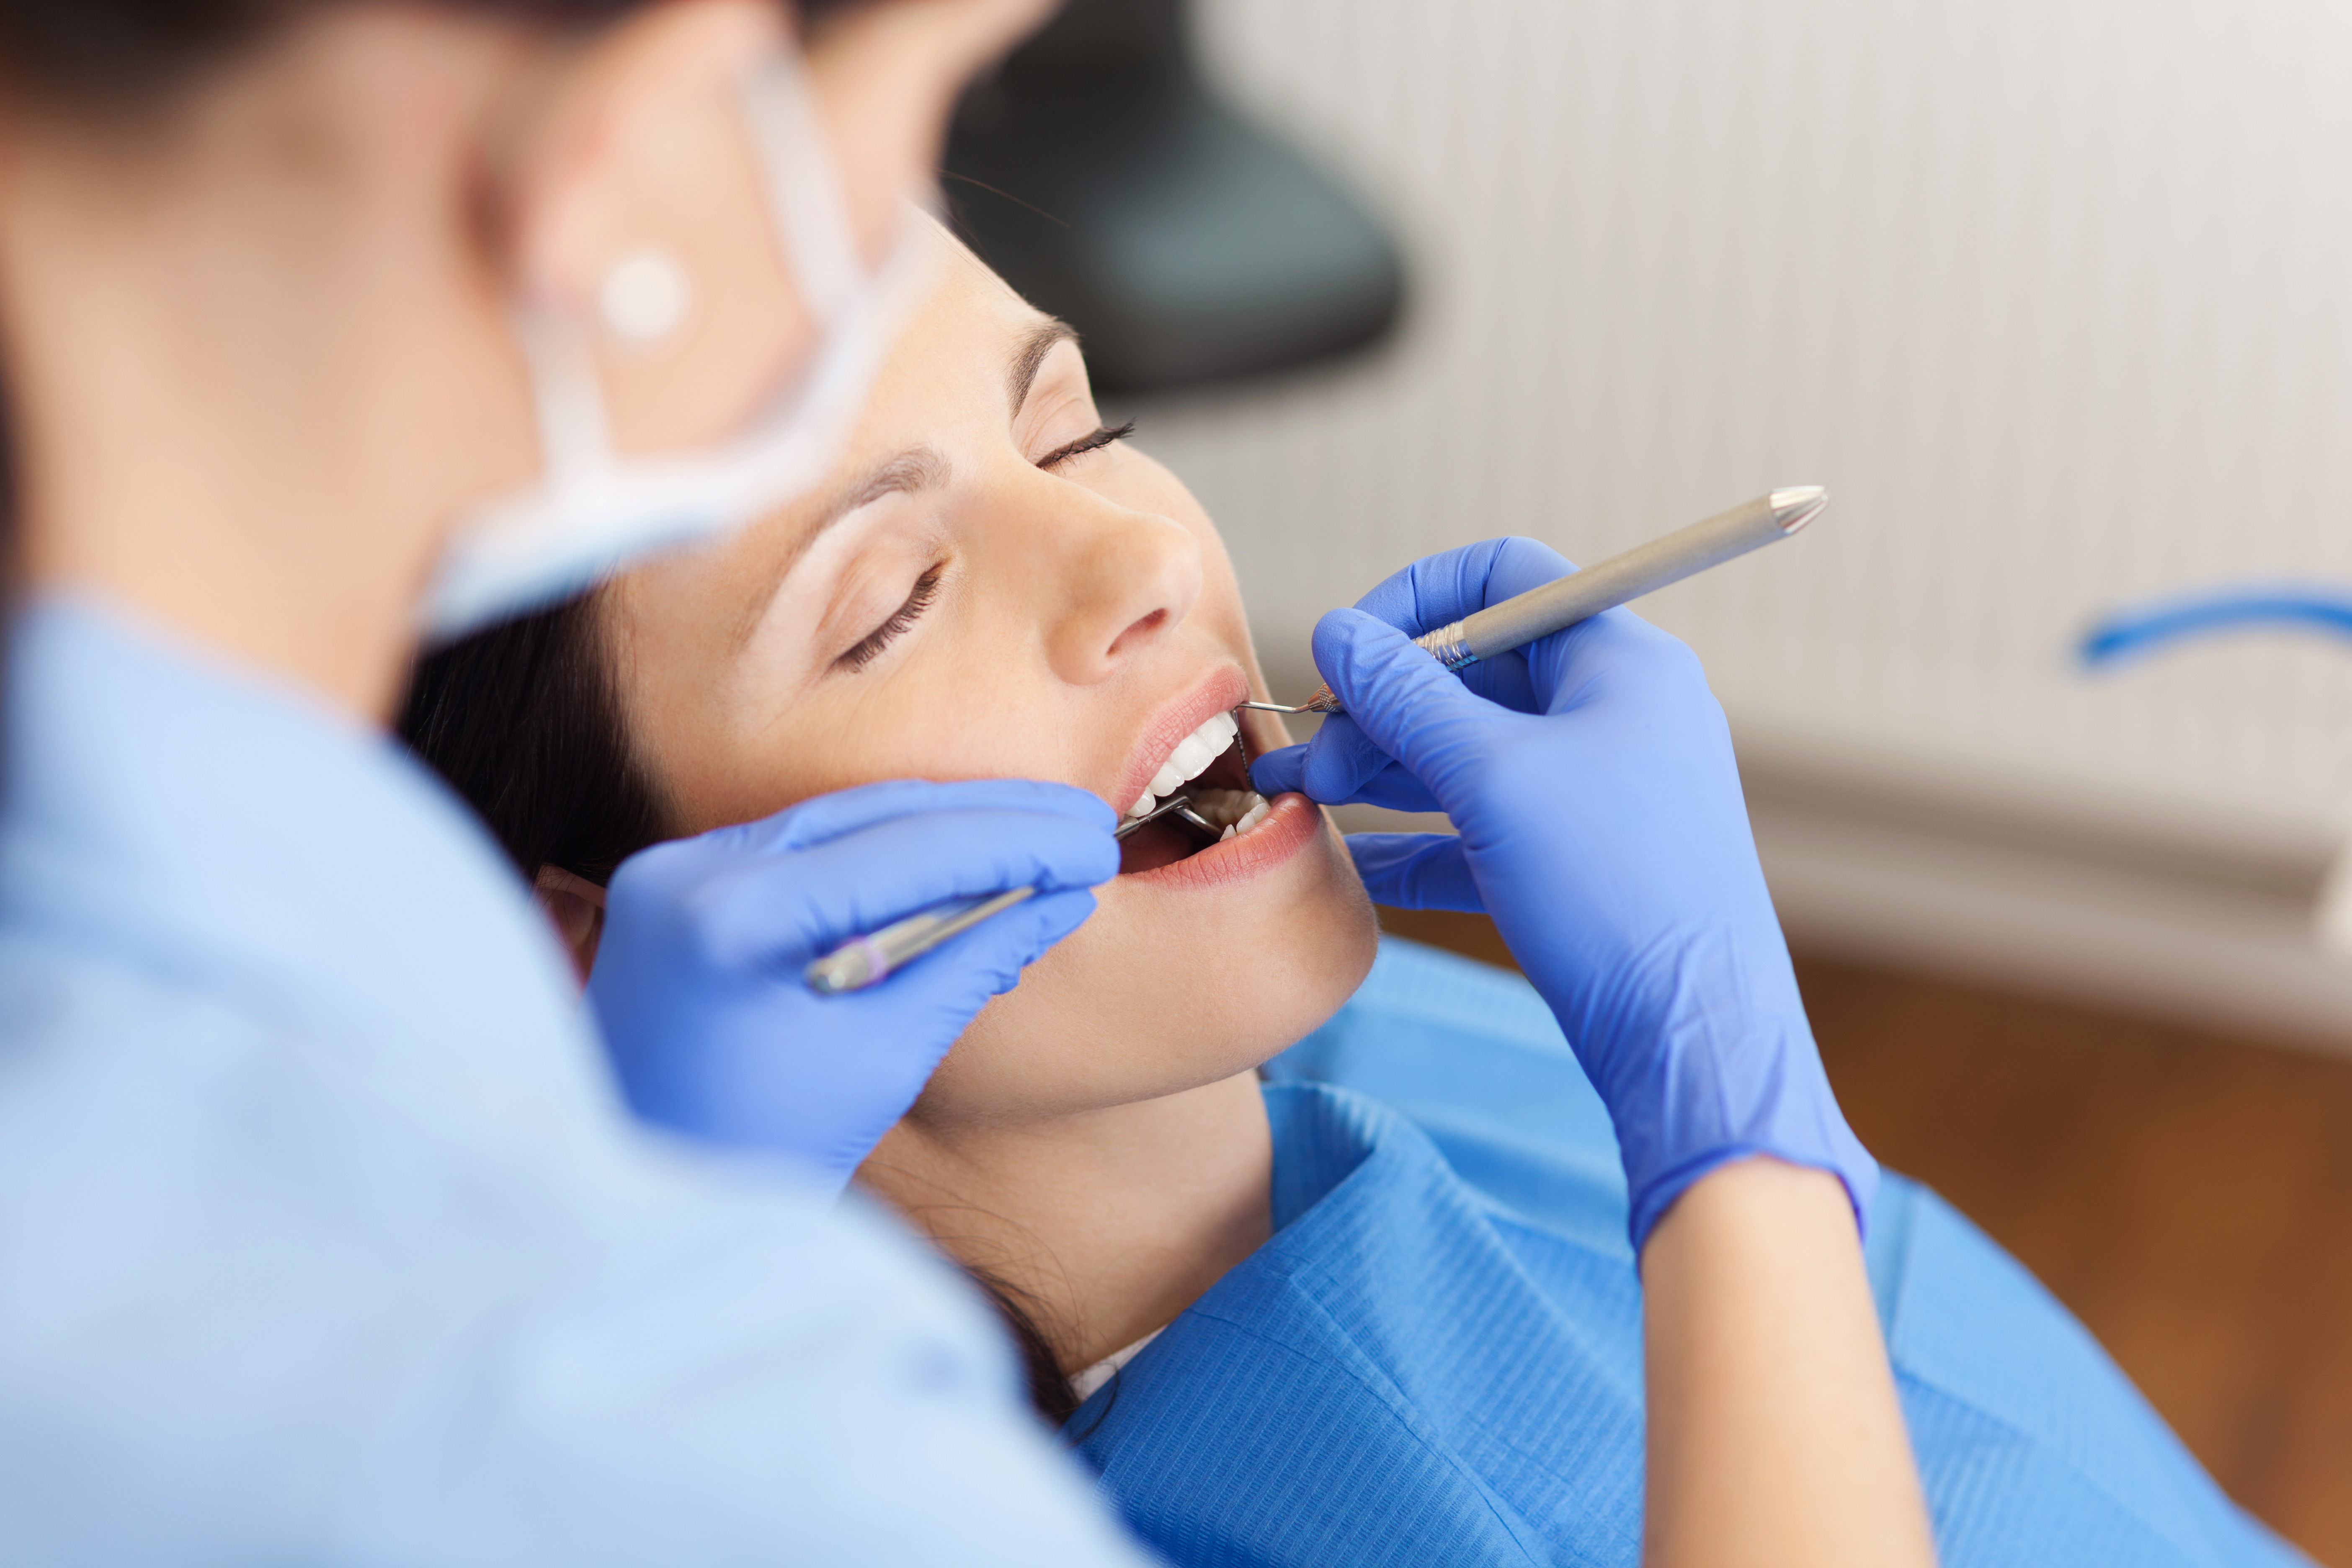 How to get emergency dental care